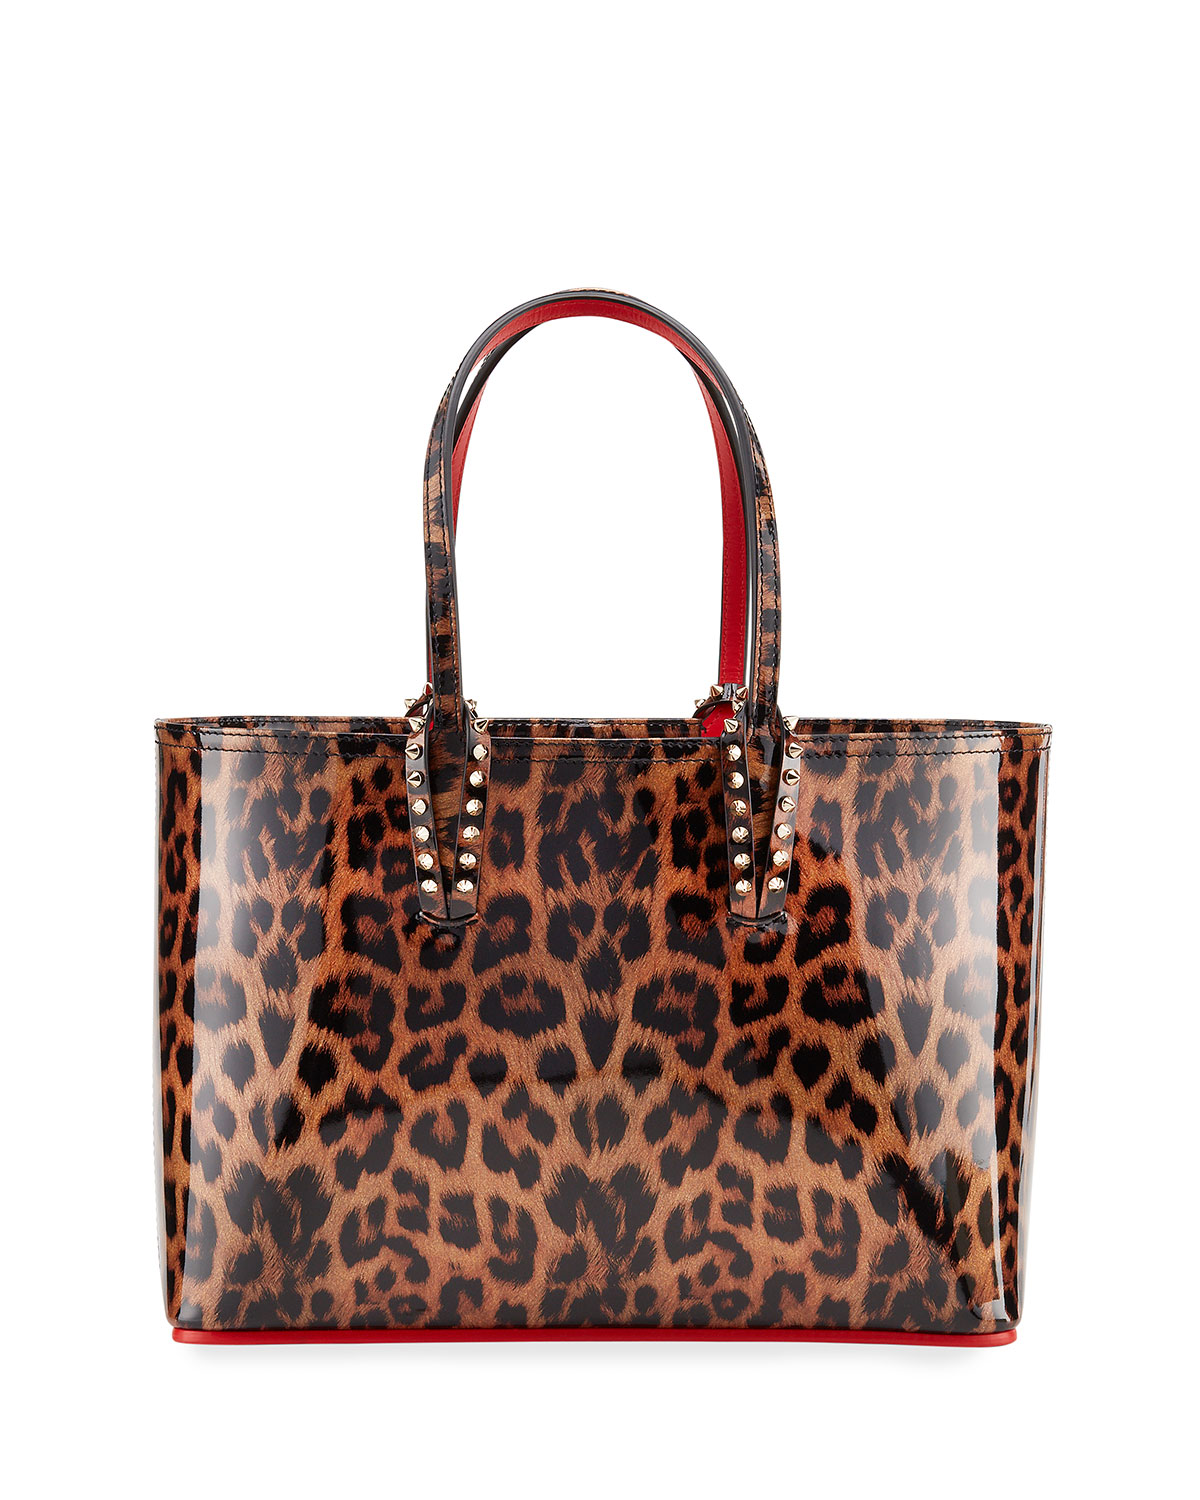 Cabata Small Leopard Print Patent Tote Bag by Christian Louboutin